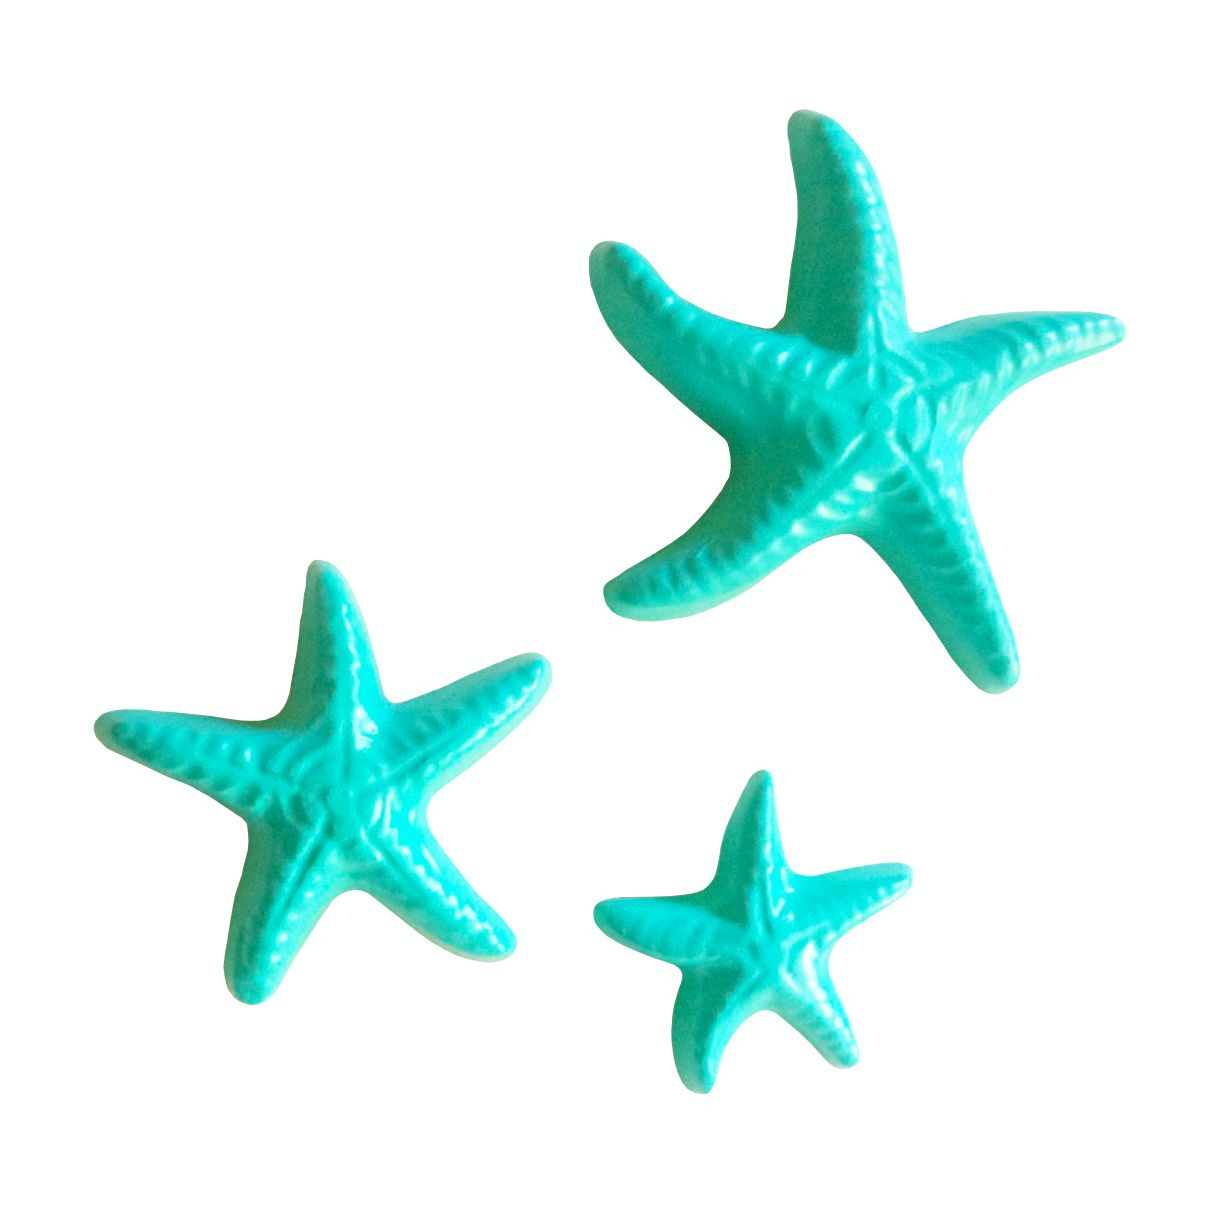 Yelton 3 Piece Starfish Wall Decor Sets Pertaining To Well Known Yelton 3 Piece Starfish Wall Décor Set (View 10 of 20)